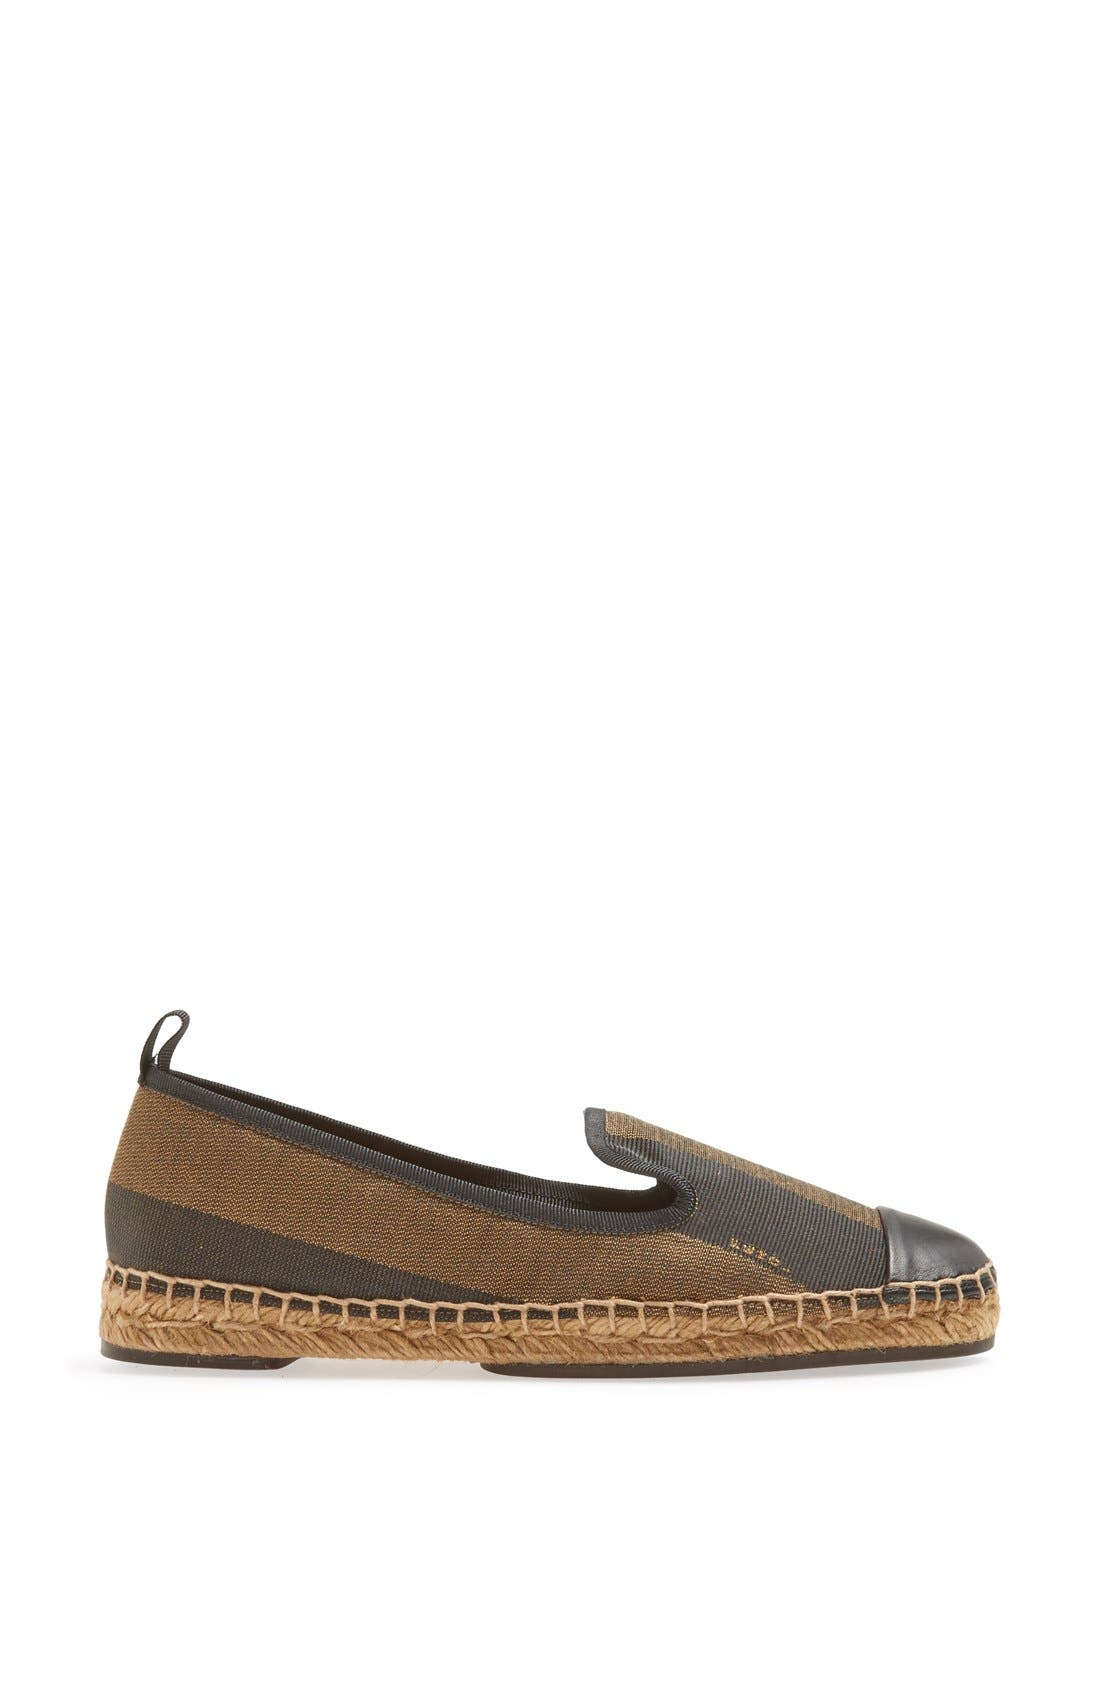 Alternate Image 4  - Fendi 'Junia' Espadrille Flat (Women)